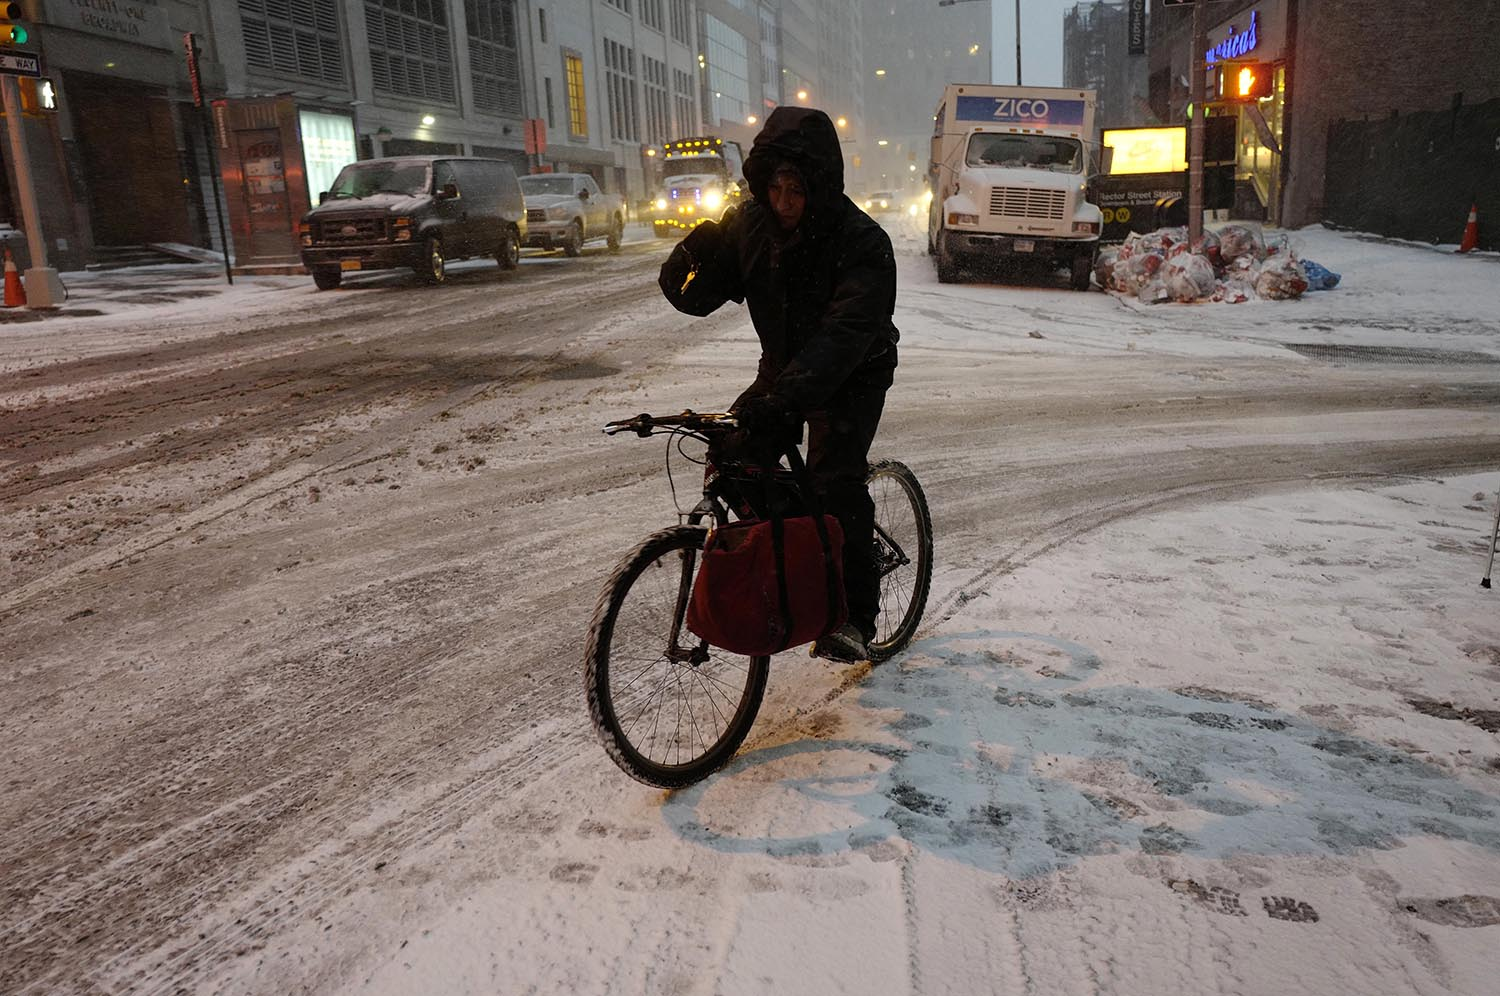 "<div class=""meta image-caption""><div class=""origin-logo origin-image ap""><span>AP</span></div><span class=""caption-text"">A bicyclist maneuvers through an early morning snowfall, Thursday, Jan. 4, 2018, in New York. (AP Photo/Mark Lennihan)</span></div>"